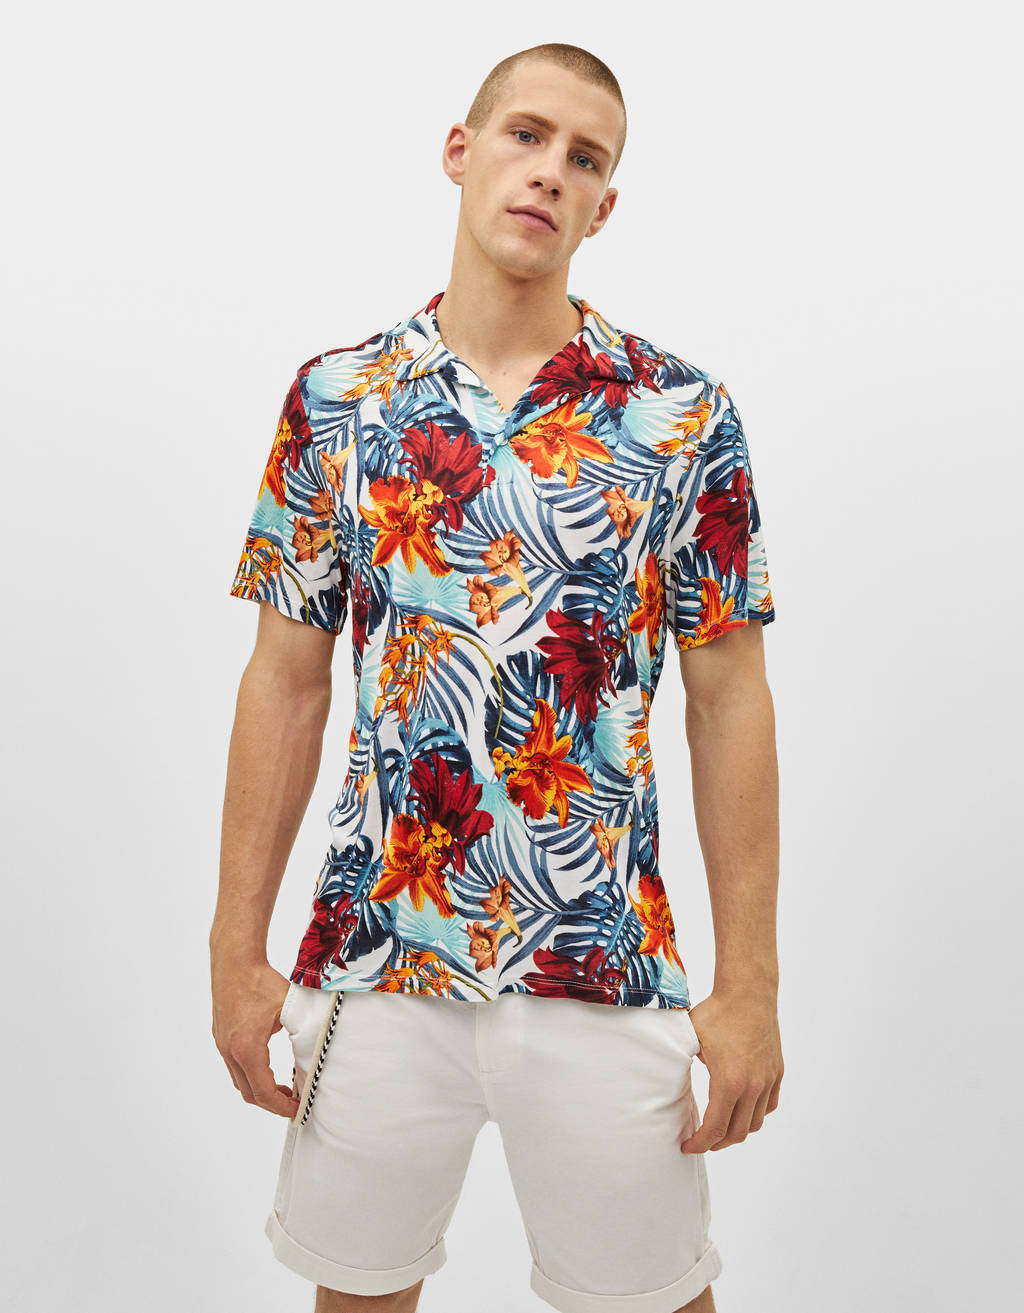 Camisa polo com estampado tropical